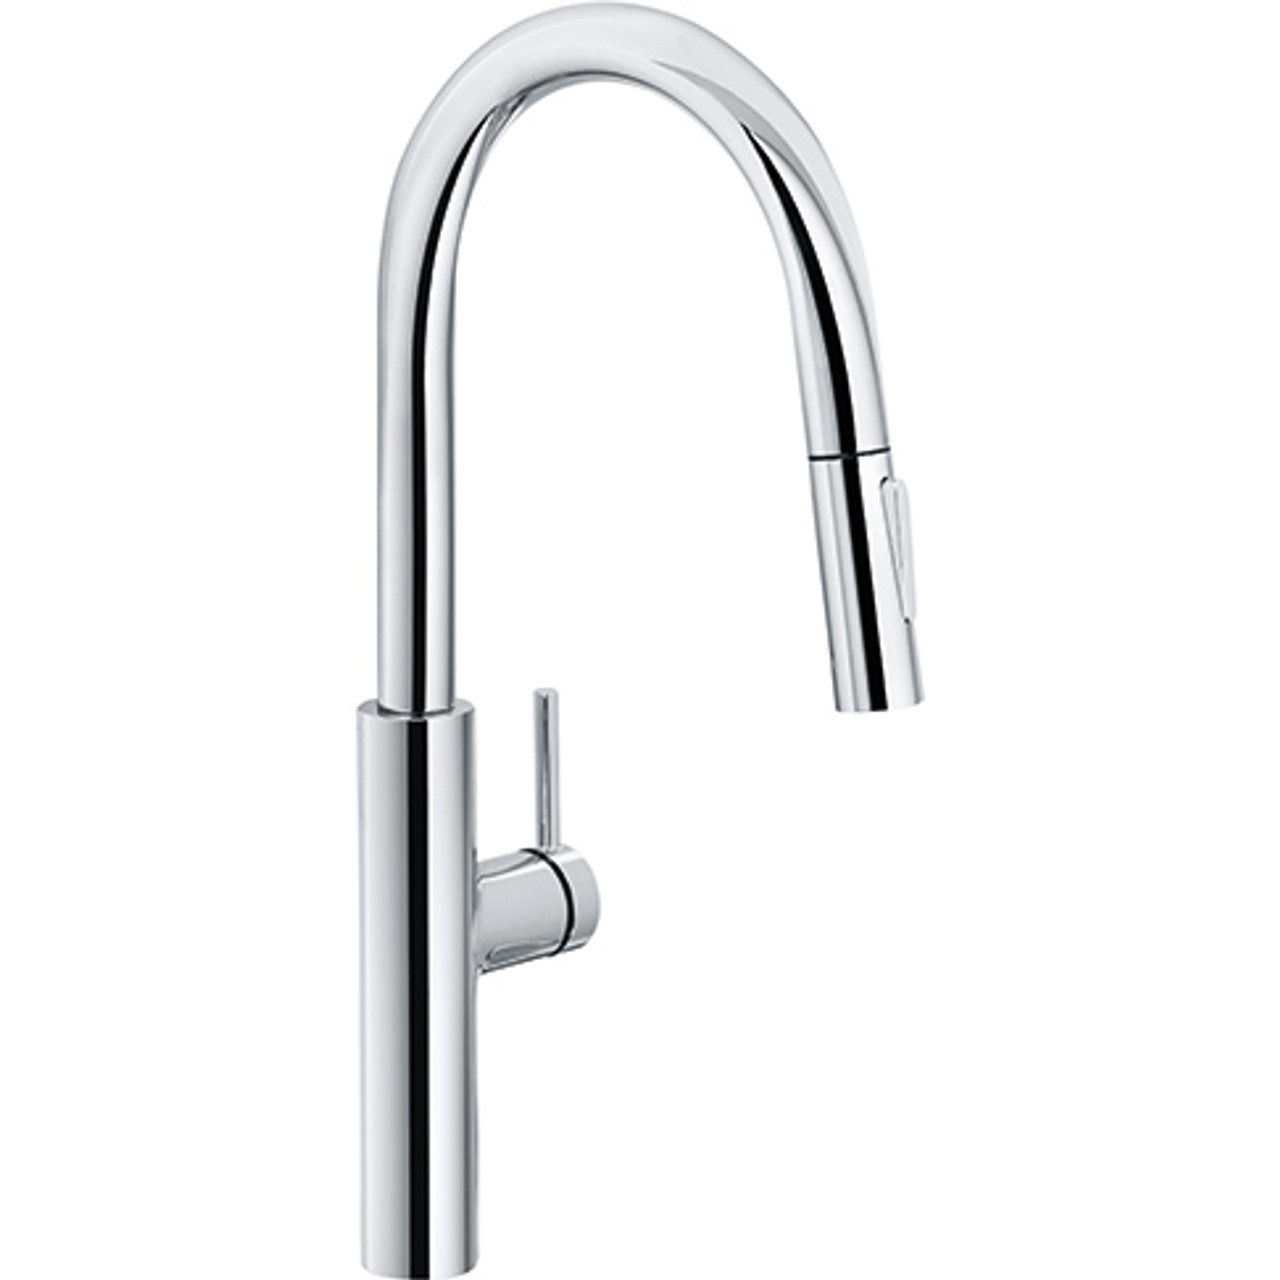 Kitchen Mixer Tap Franke Pescara Xl Pull Down Spray Kitchen Mixer Tap